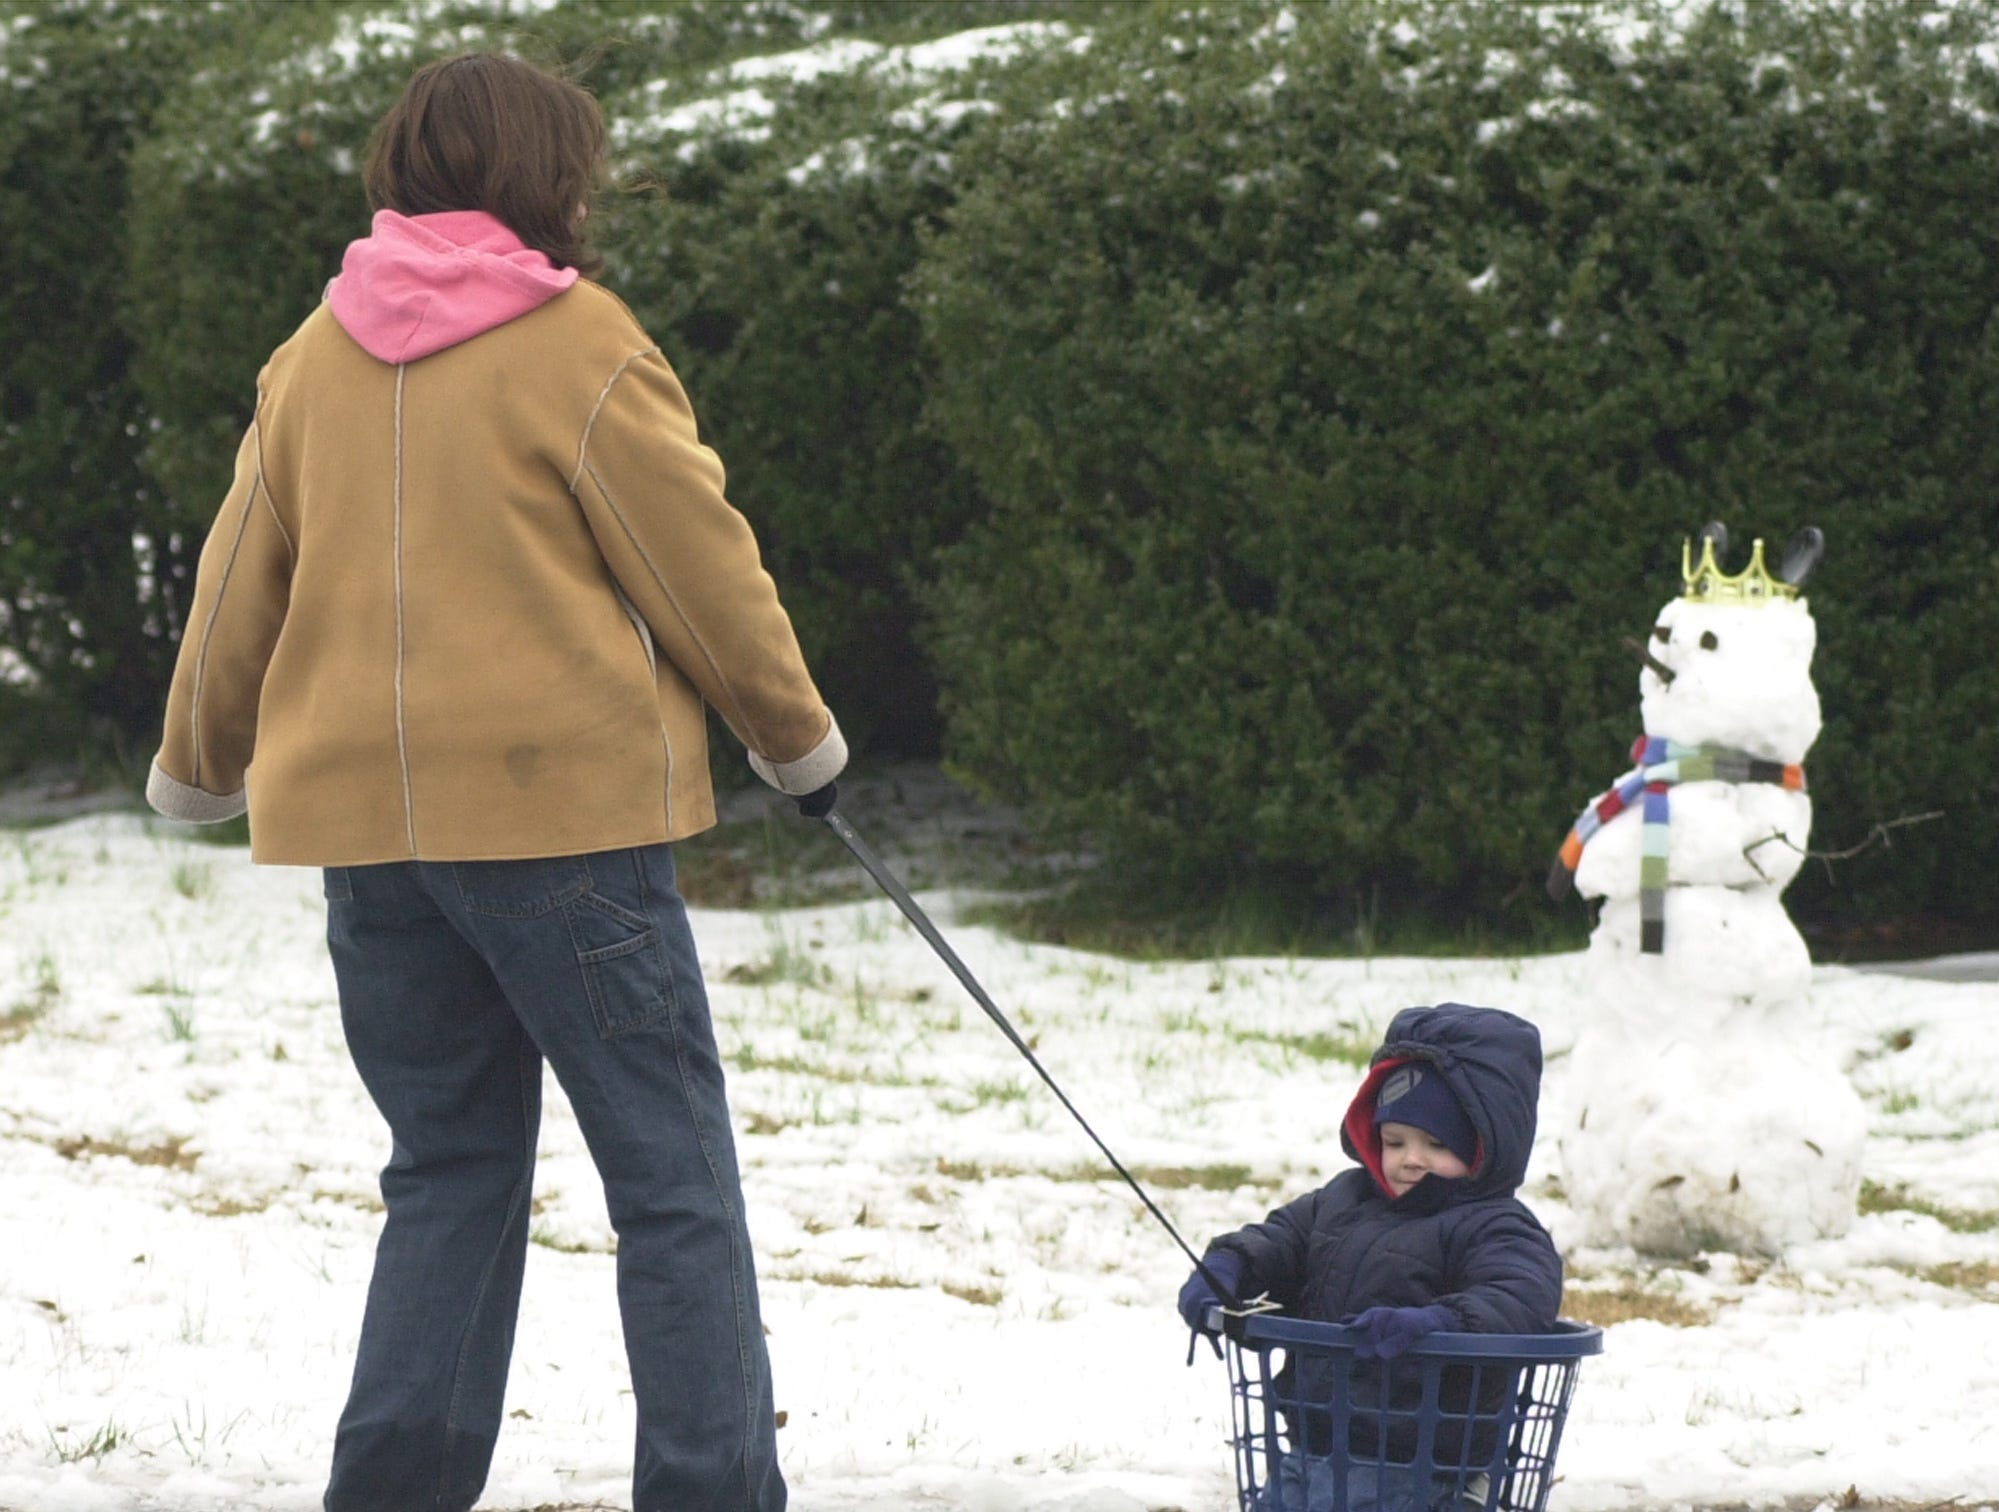 Teresa Perry pulls her son Jake in a laundry basket up their Easley driveway Thursday, February 1, 2007.